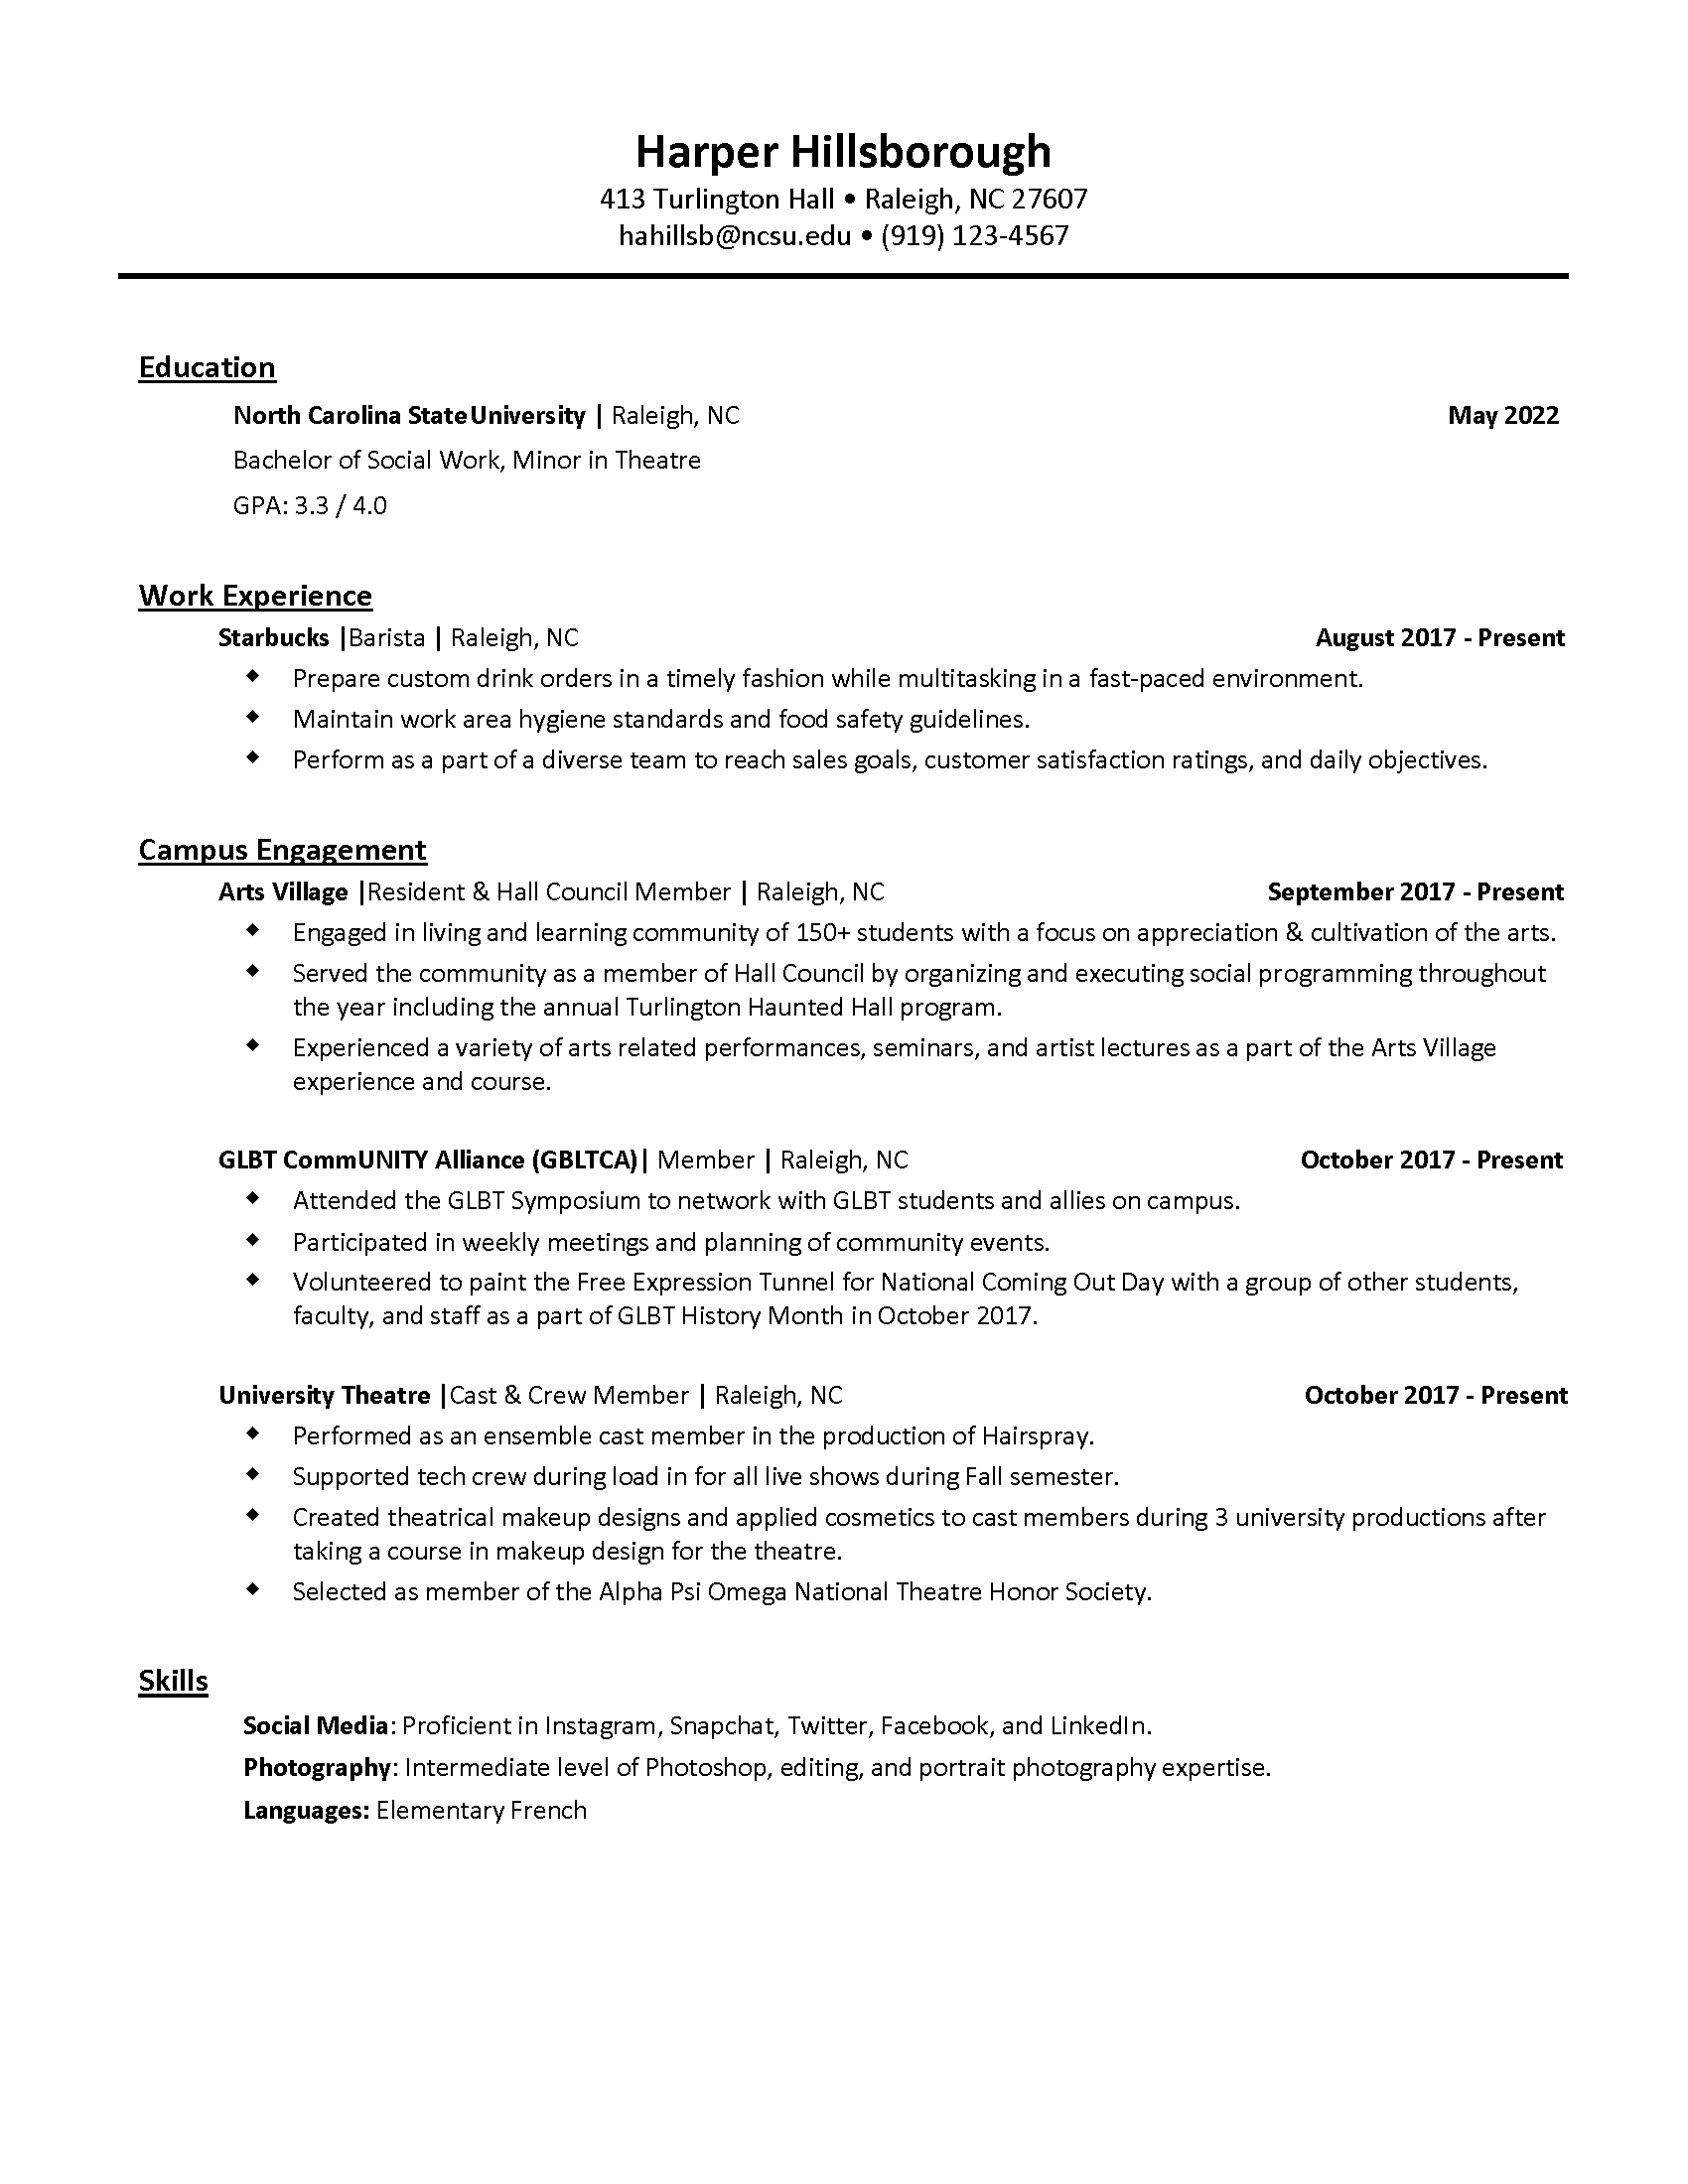 General Resume Career Development Center